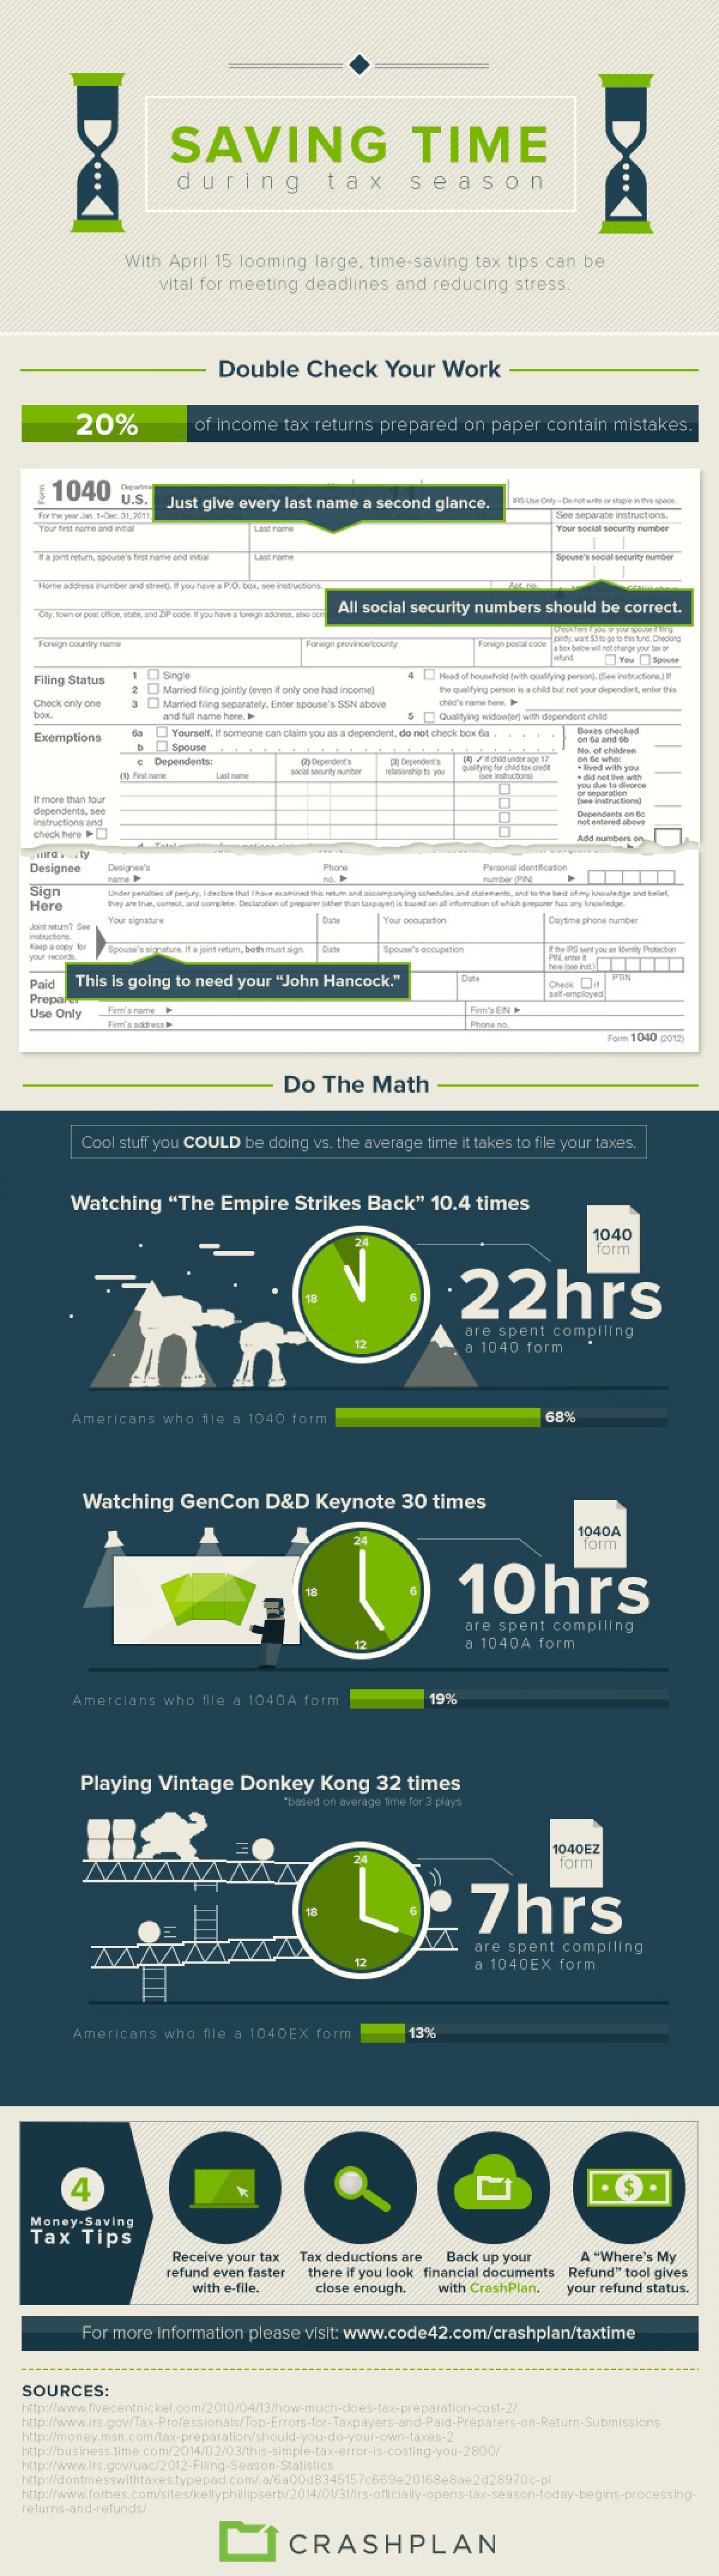 Saving Time During Tax Season Infographic